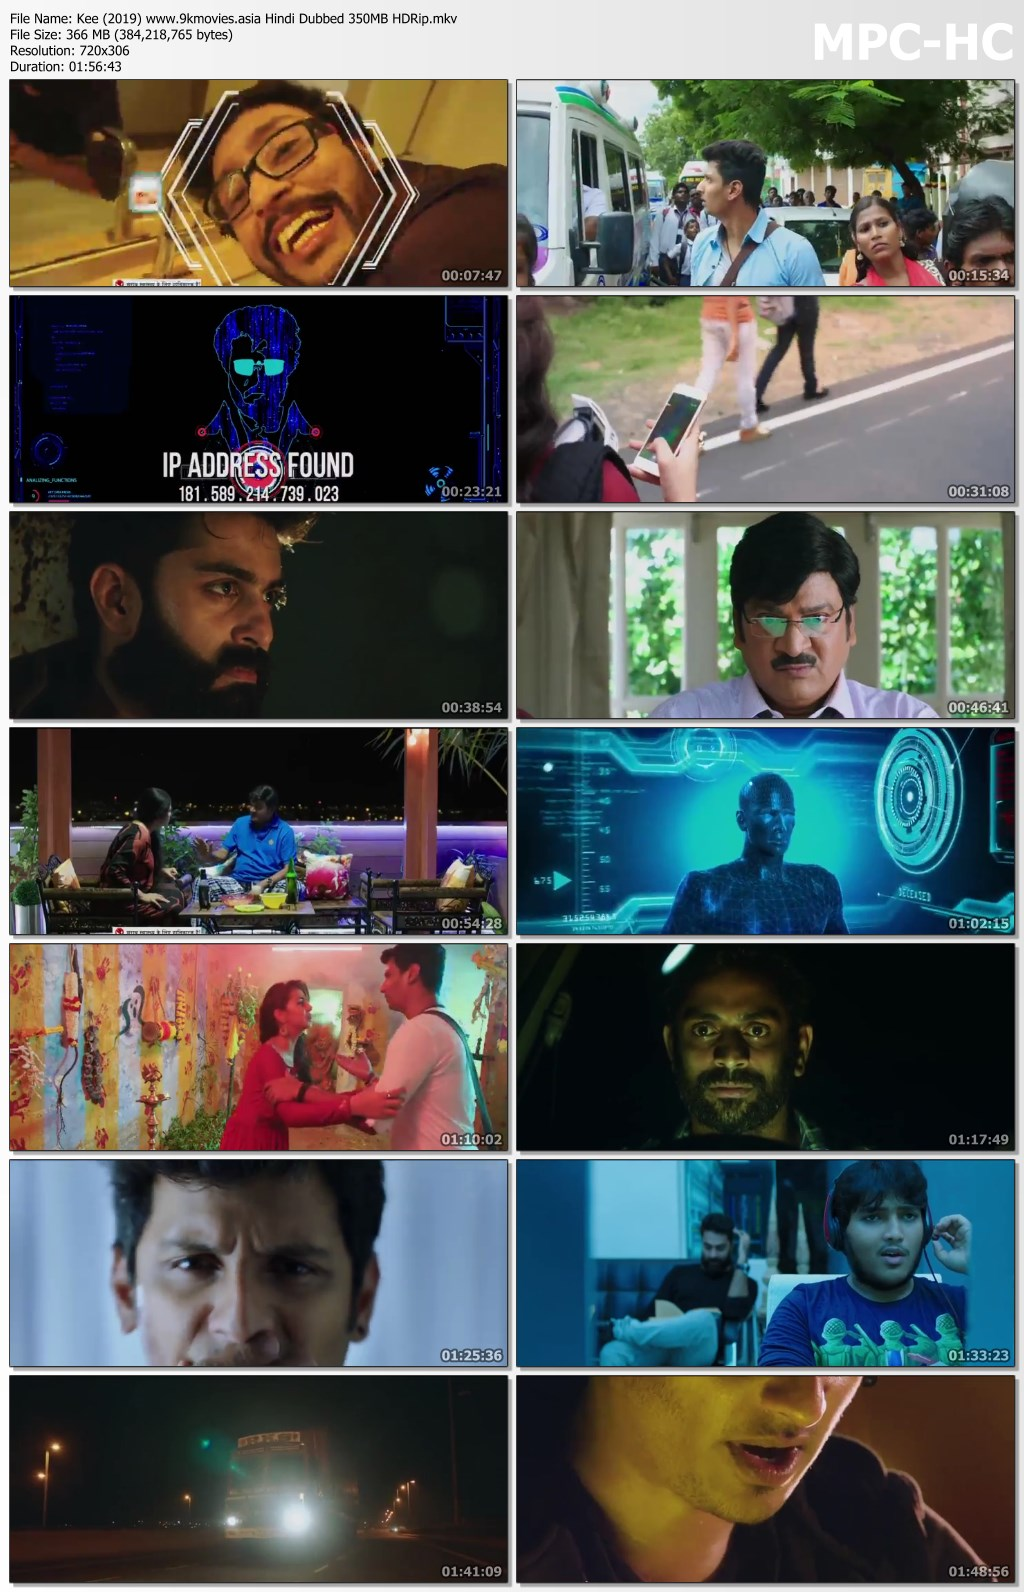 kee movie hindi dubbed download